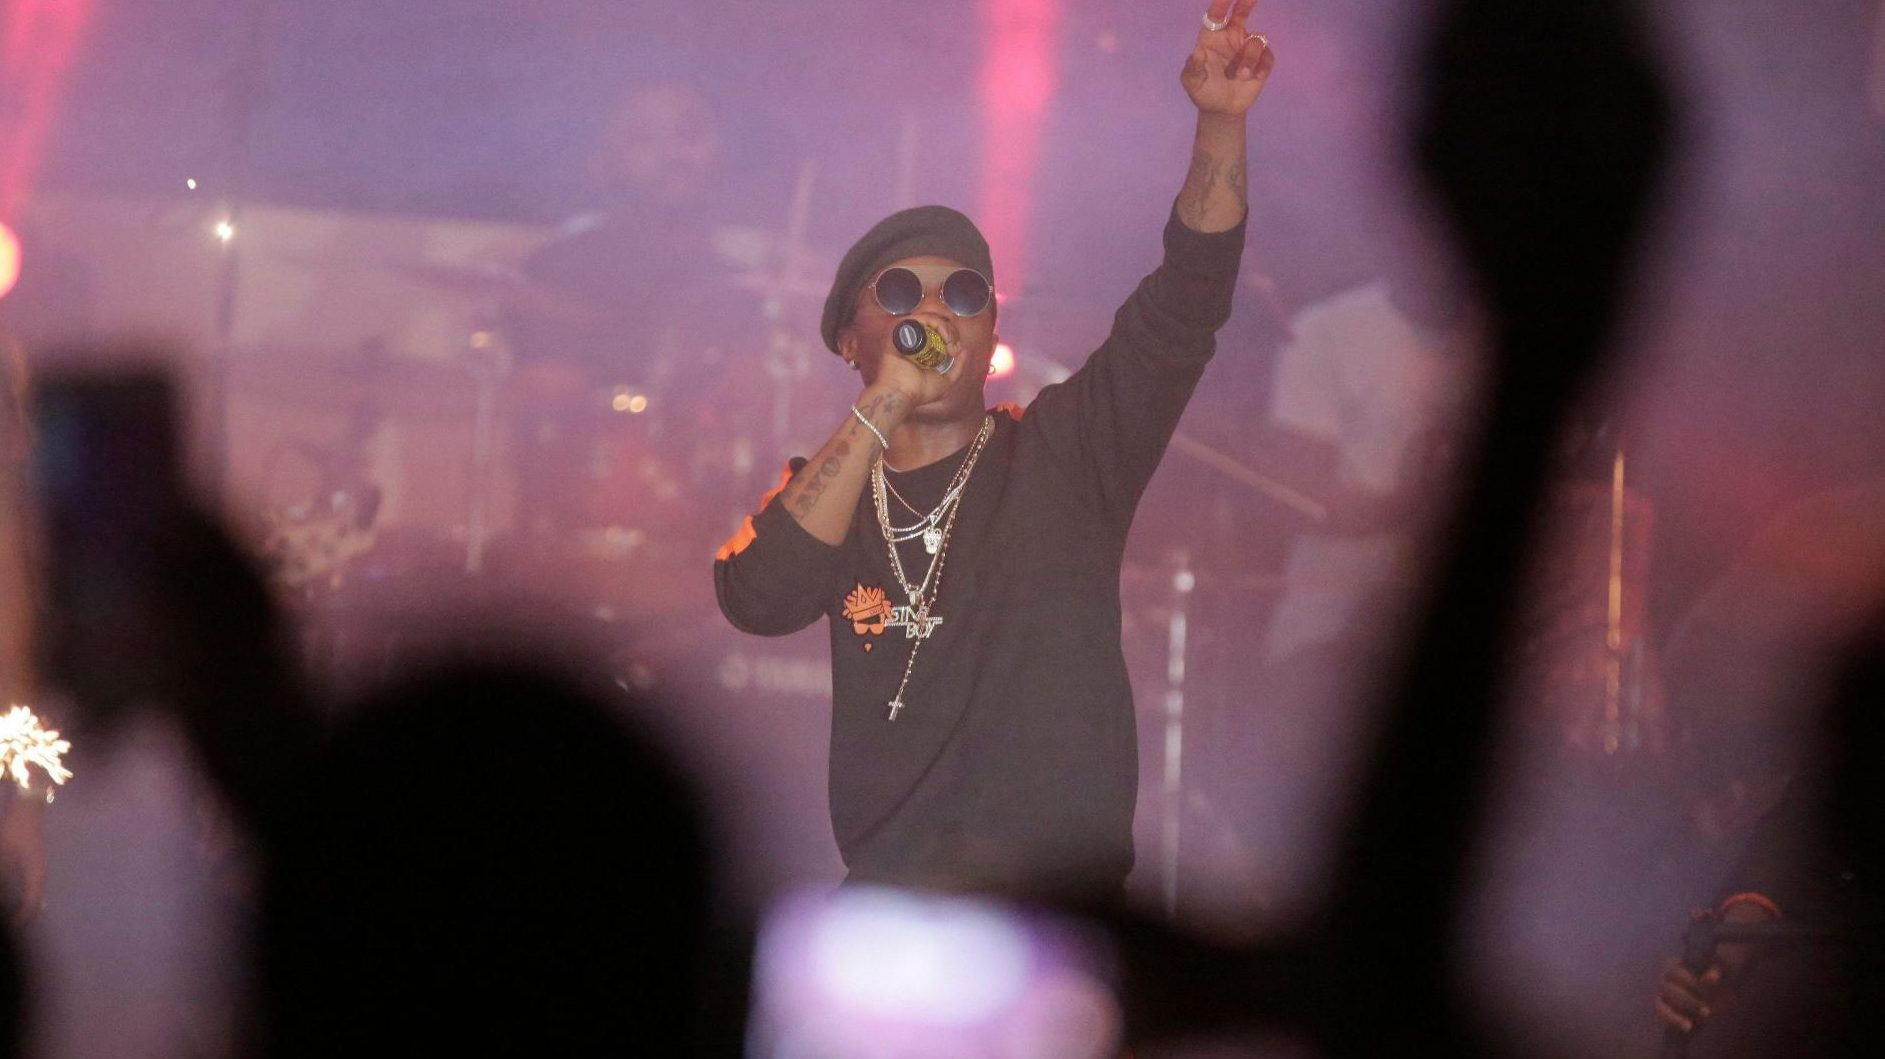 An image of Wizkid dressed in a black shirt and beret, performing at an event